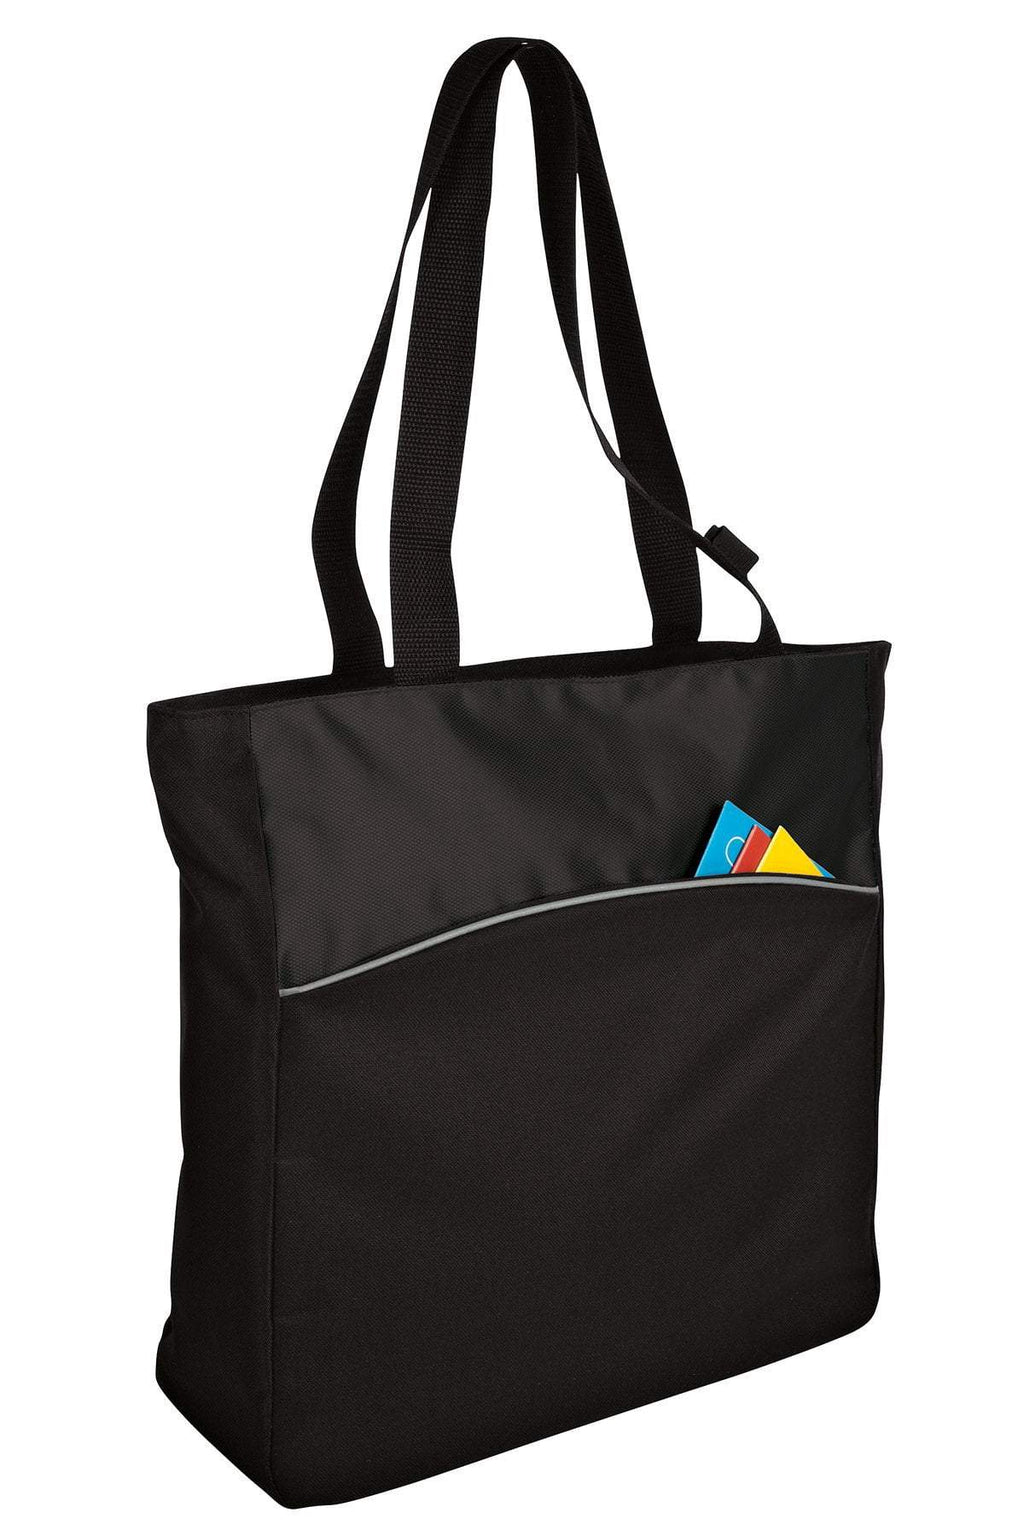 BAGANDTOTE Canvas Tote Bag BLACK Two-Tone Colorblock Polyester Canvas tote Bag